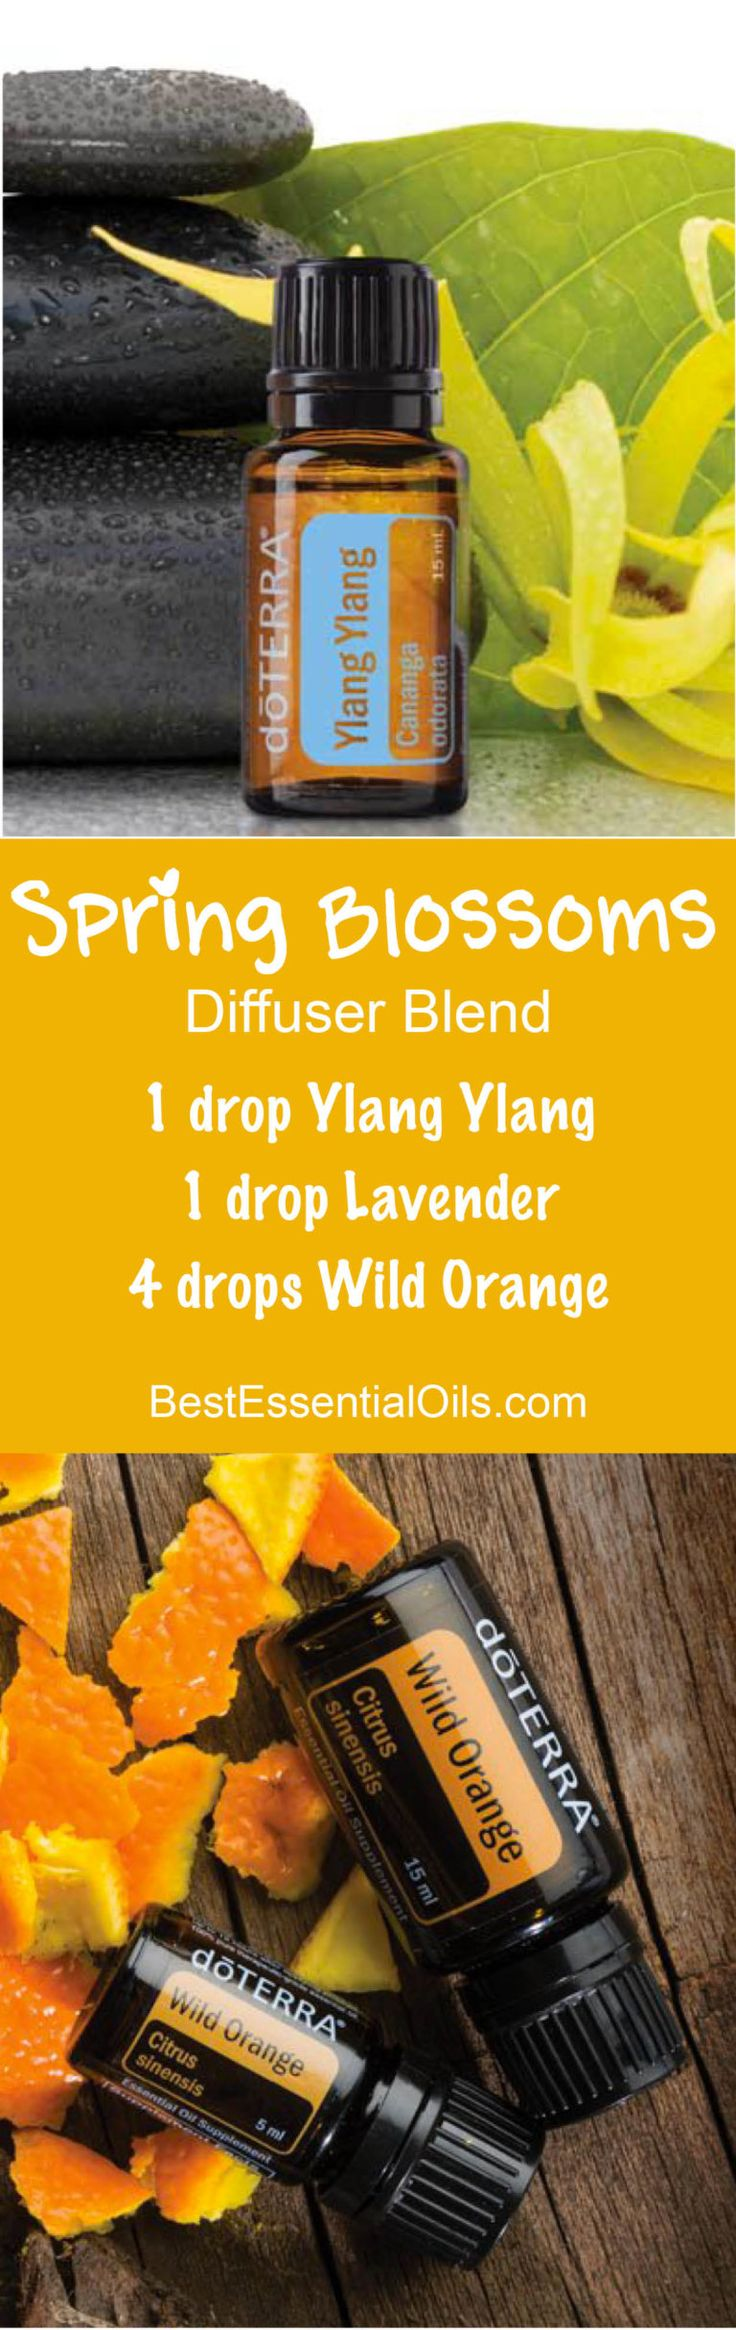 Spring Blossoms doTERRA Diffuser Blend